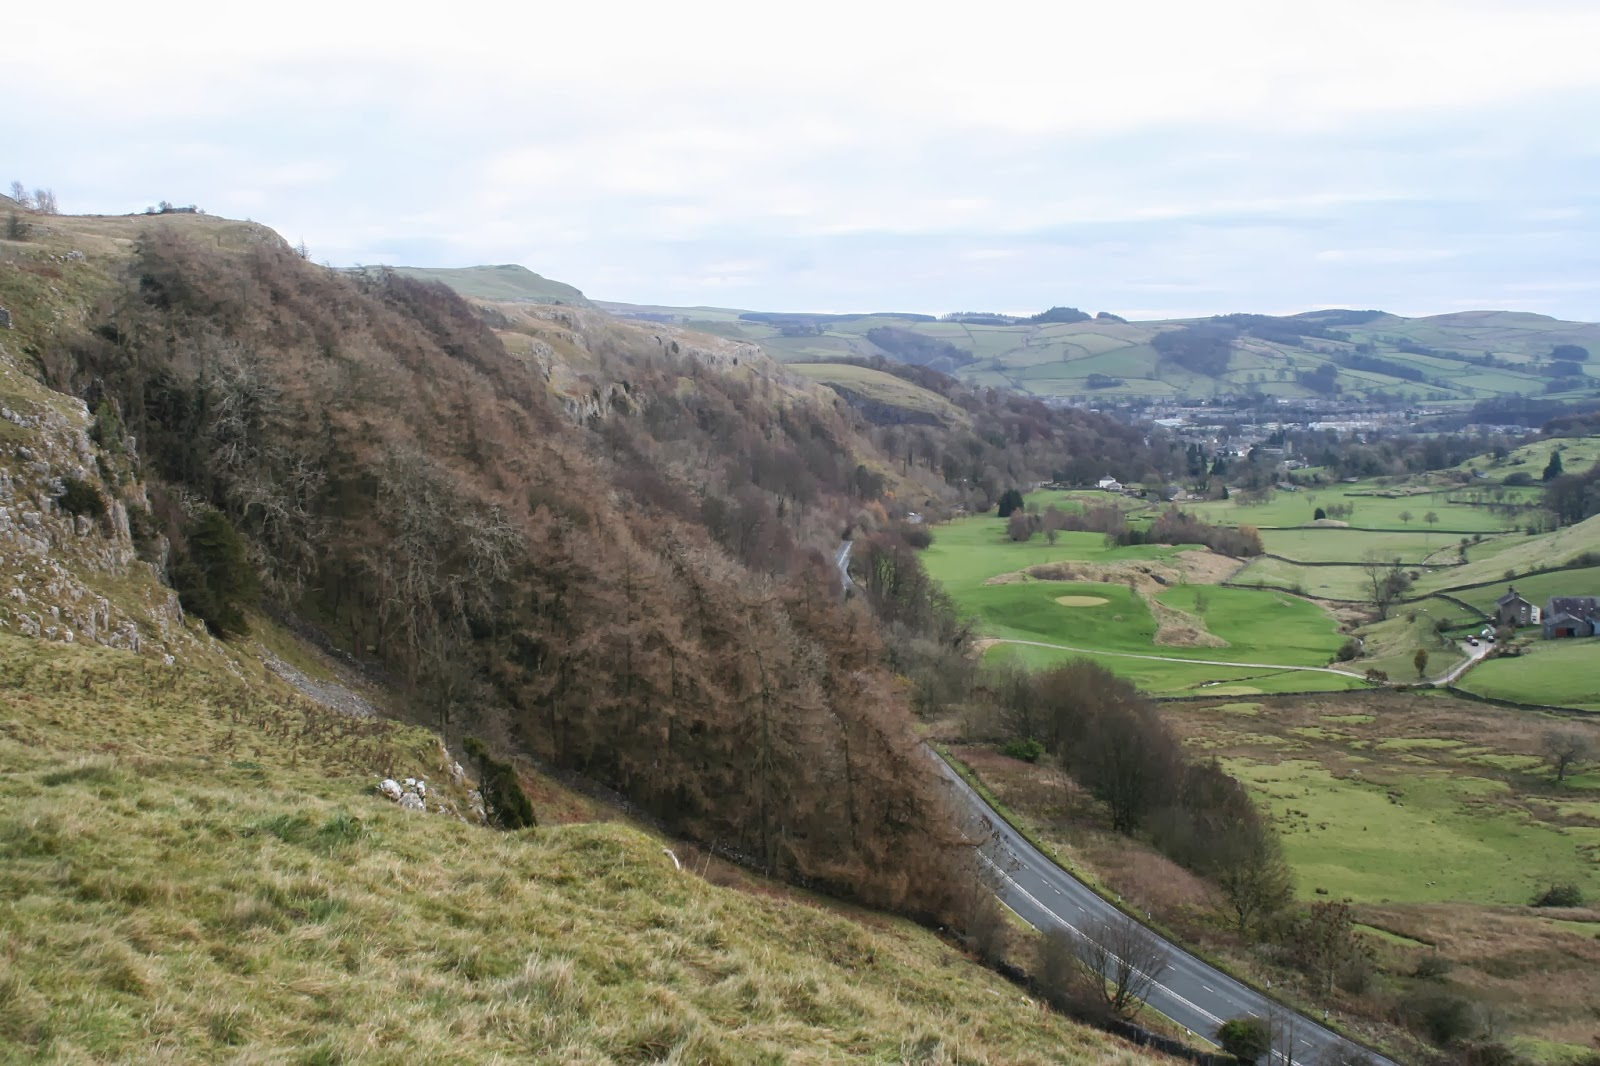 Dramatic evidence of the South Craven Fault at Giggleswick Scar, where the Great Scar Limestone cliffs effectively lie thousands of feet above the same rock now buried beneath the golf course. Stephen Oldfield